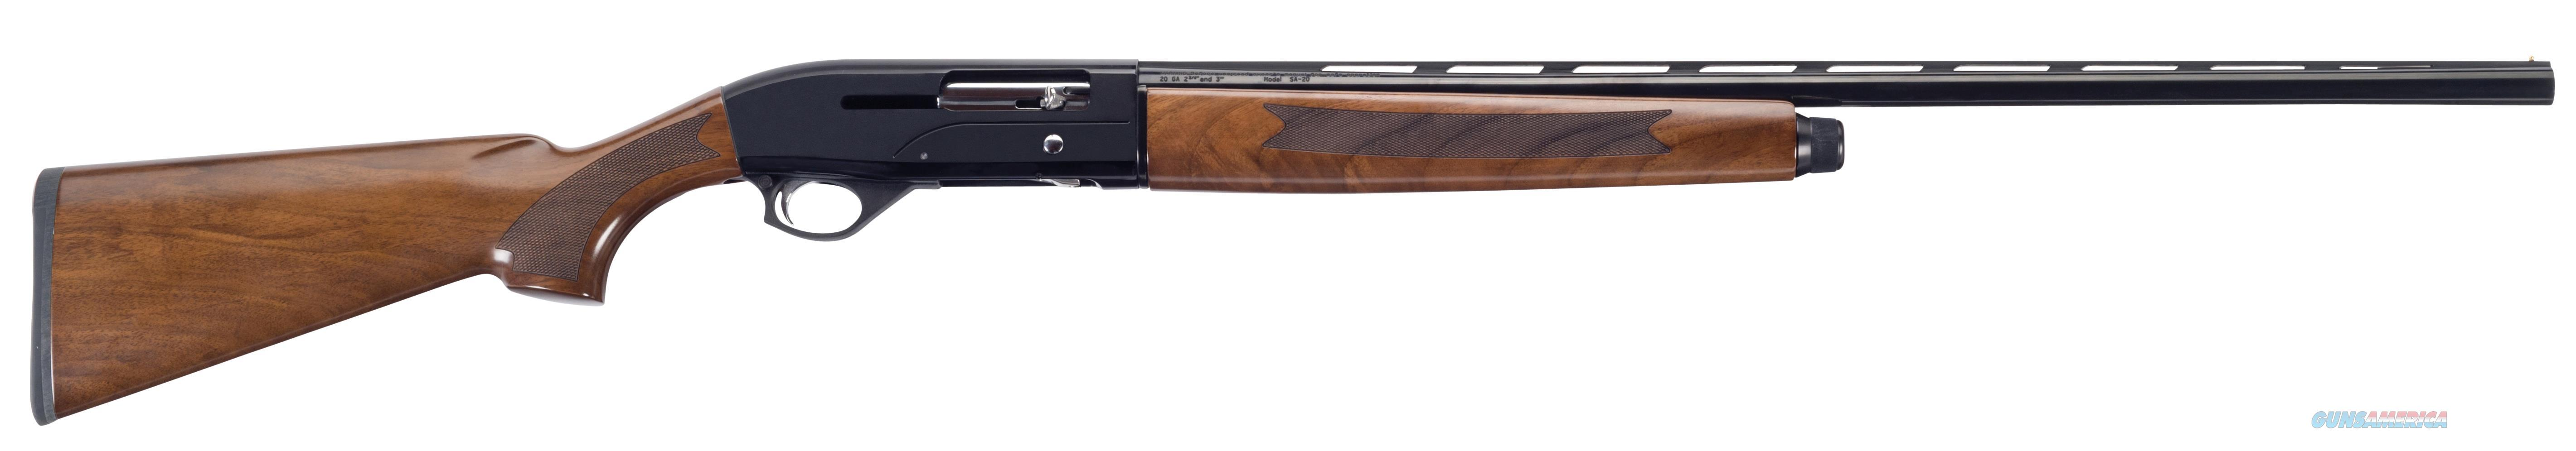 "Mossberg 75789 Sa-20 All Purpose Field Semi-Automatic 20 Gauge 26"" 3"" Walnut Stk Blued 75789  Guns > Shotguns > MN Misc Shotguns"